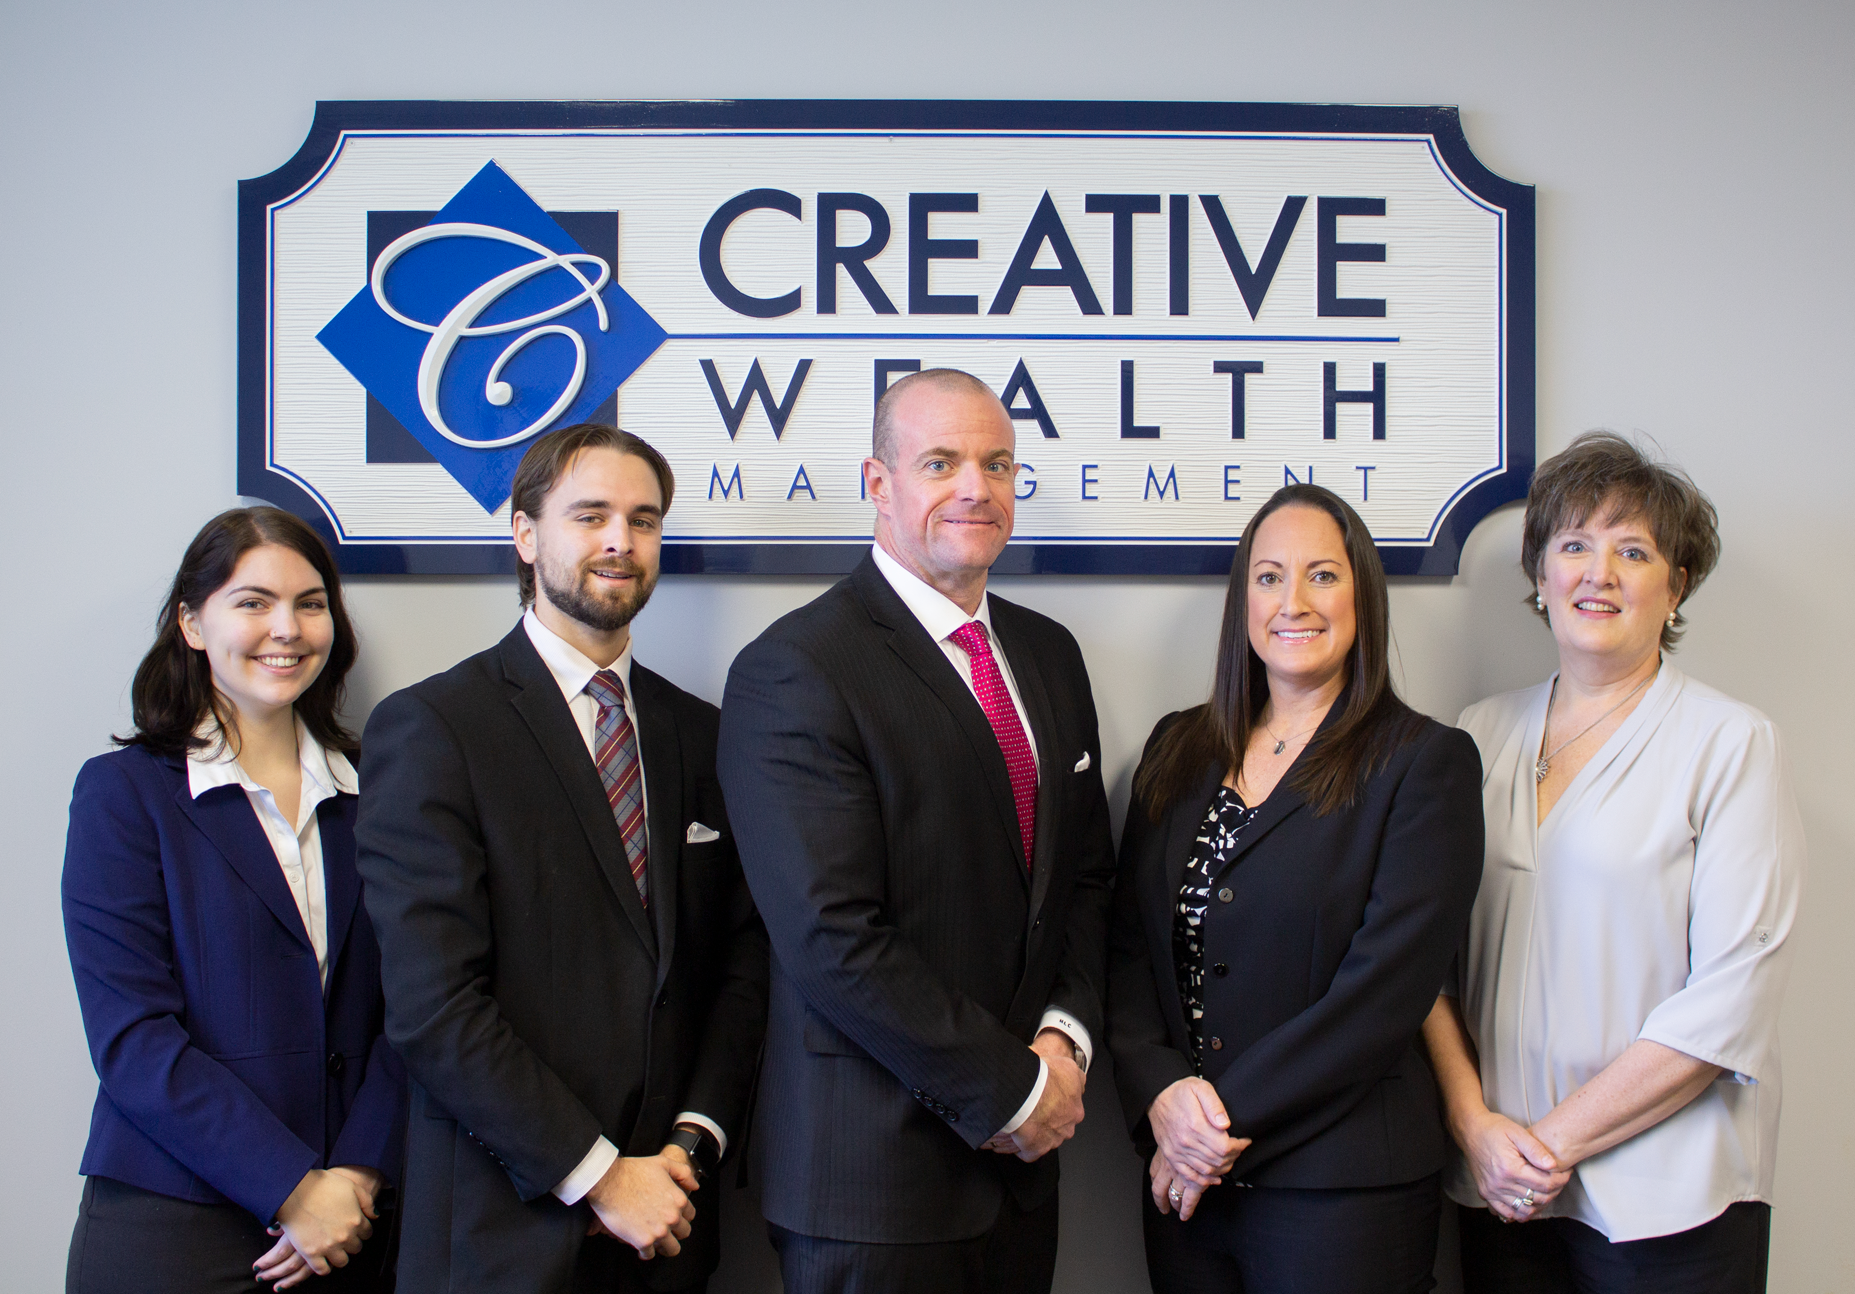 the creative wealth management team